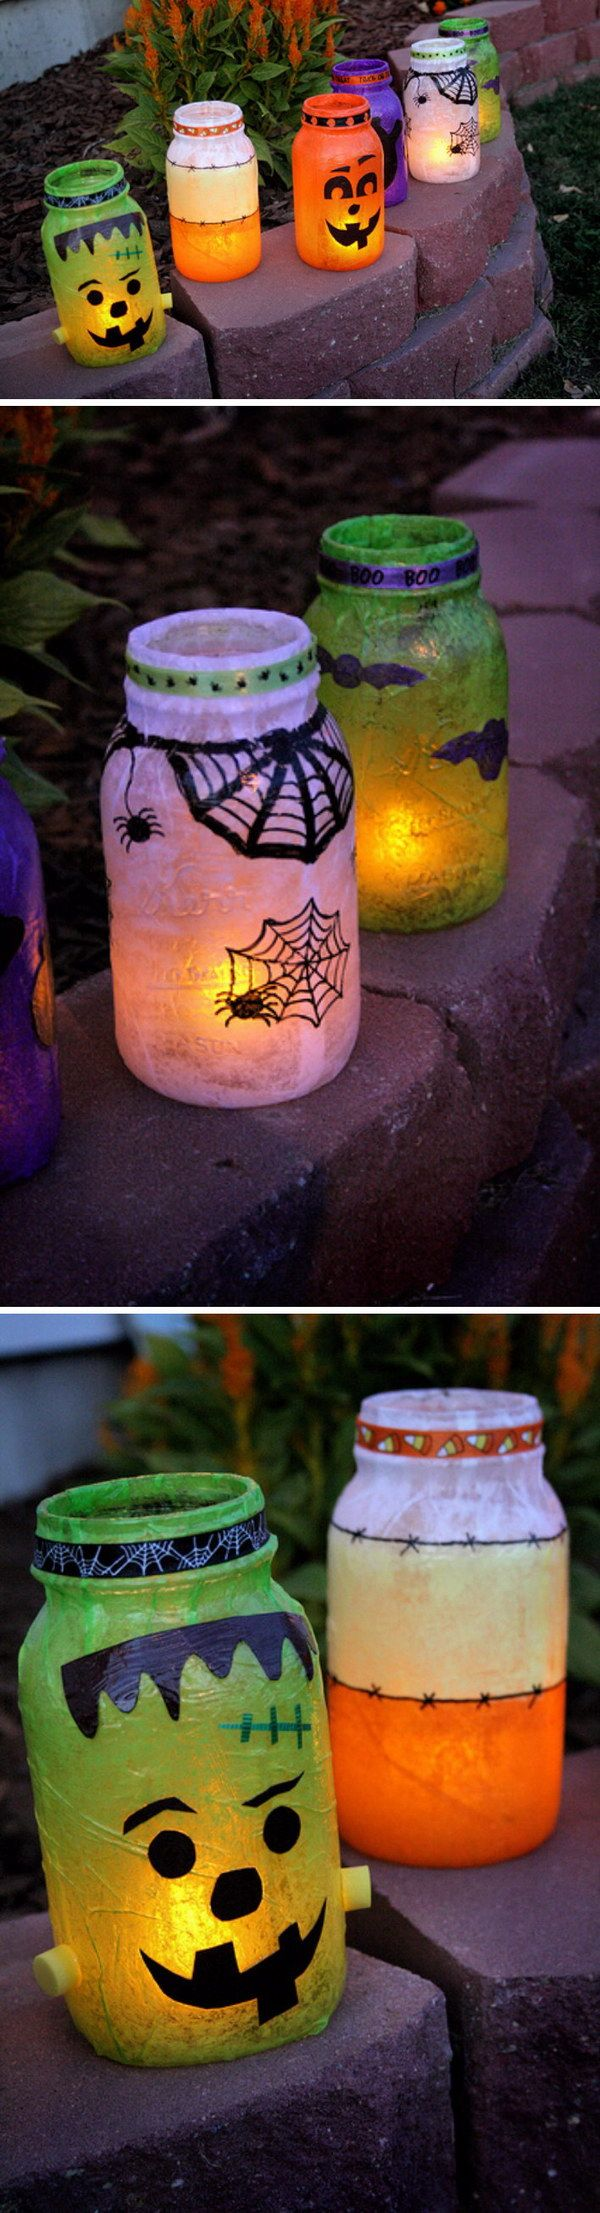 Cute Halloween Lanterns.